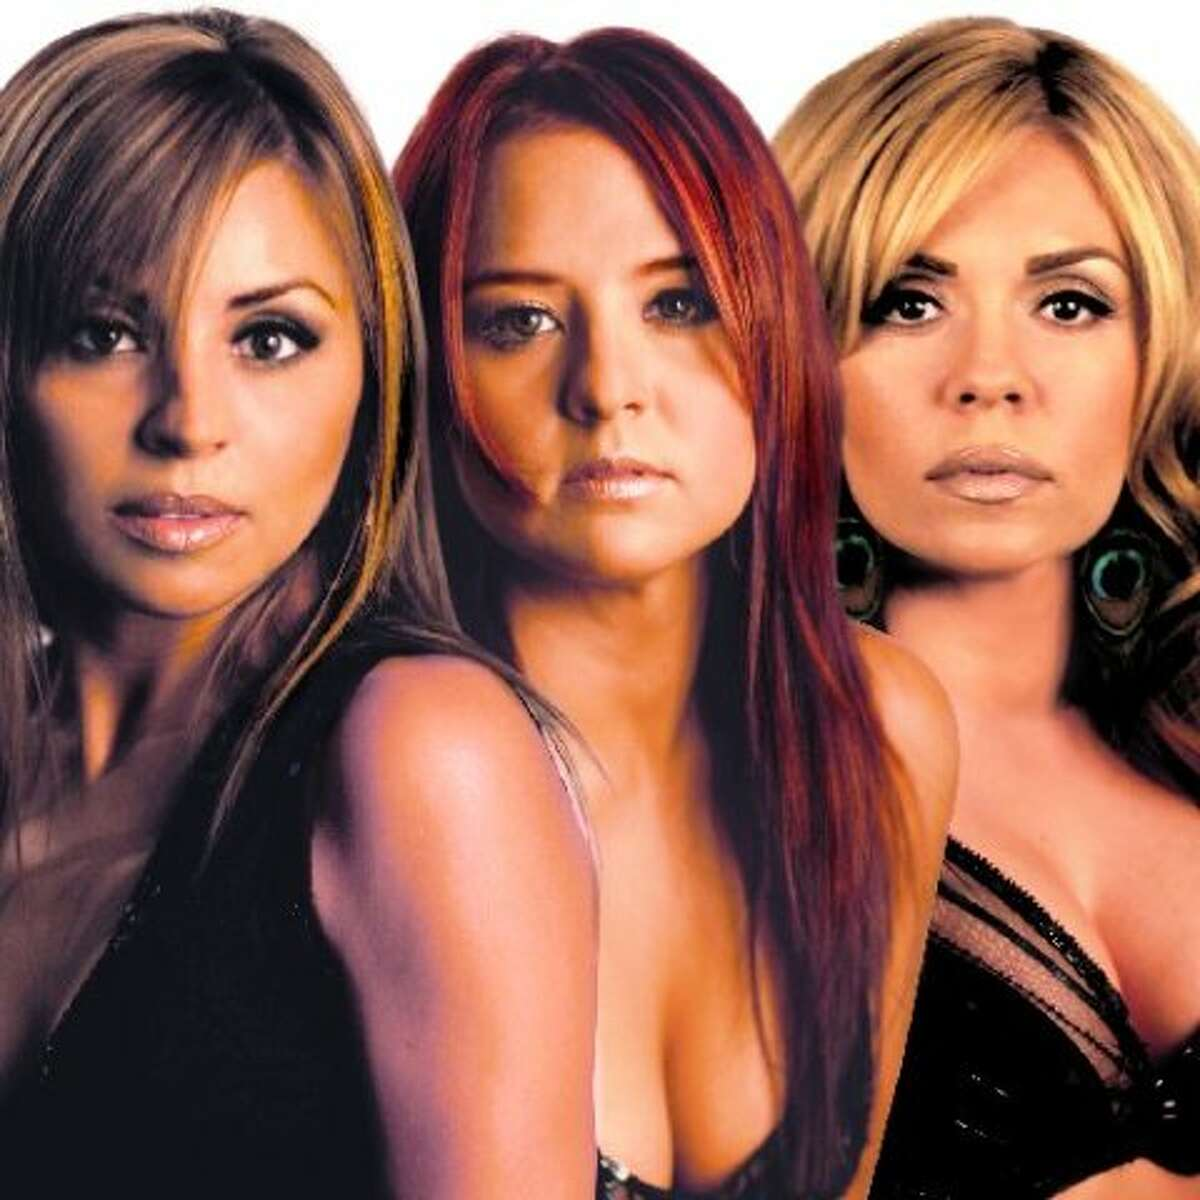 Las 3 Divas featuring hometown favorites Shelly Lares (center) and Stefani Montiel (right) were nominated for a Latin Grammy in 2006. That's Tejano Queen Elida Reyna on the left.